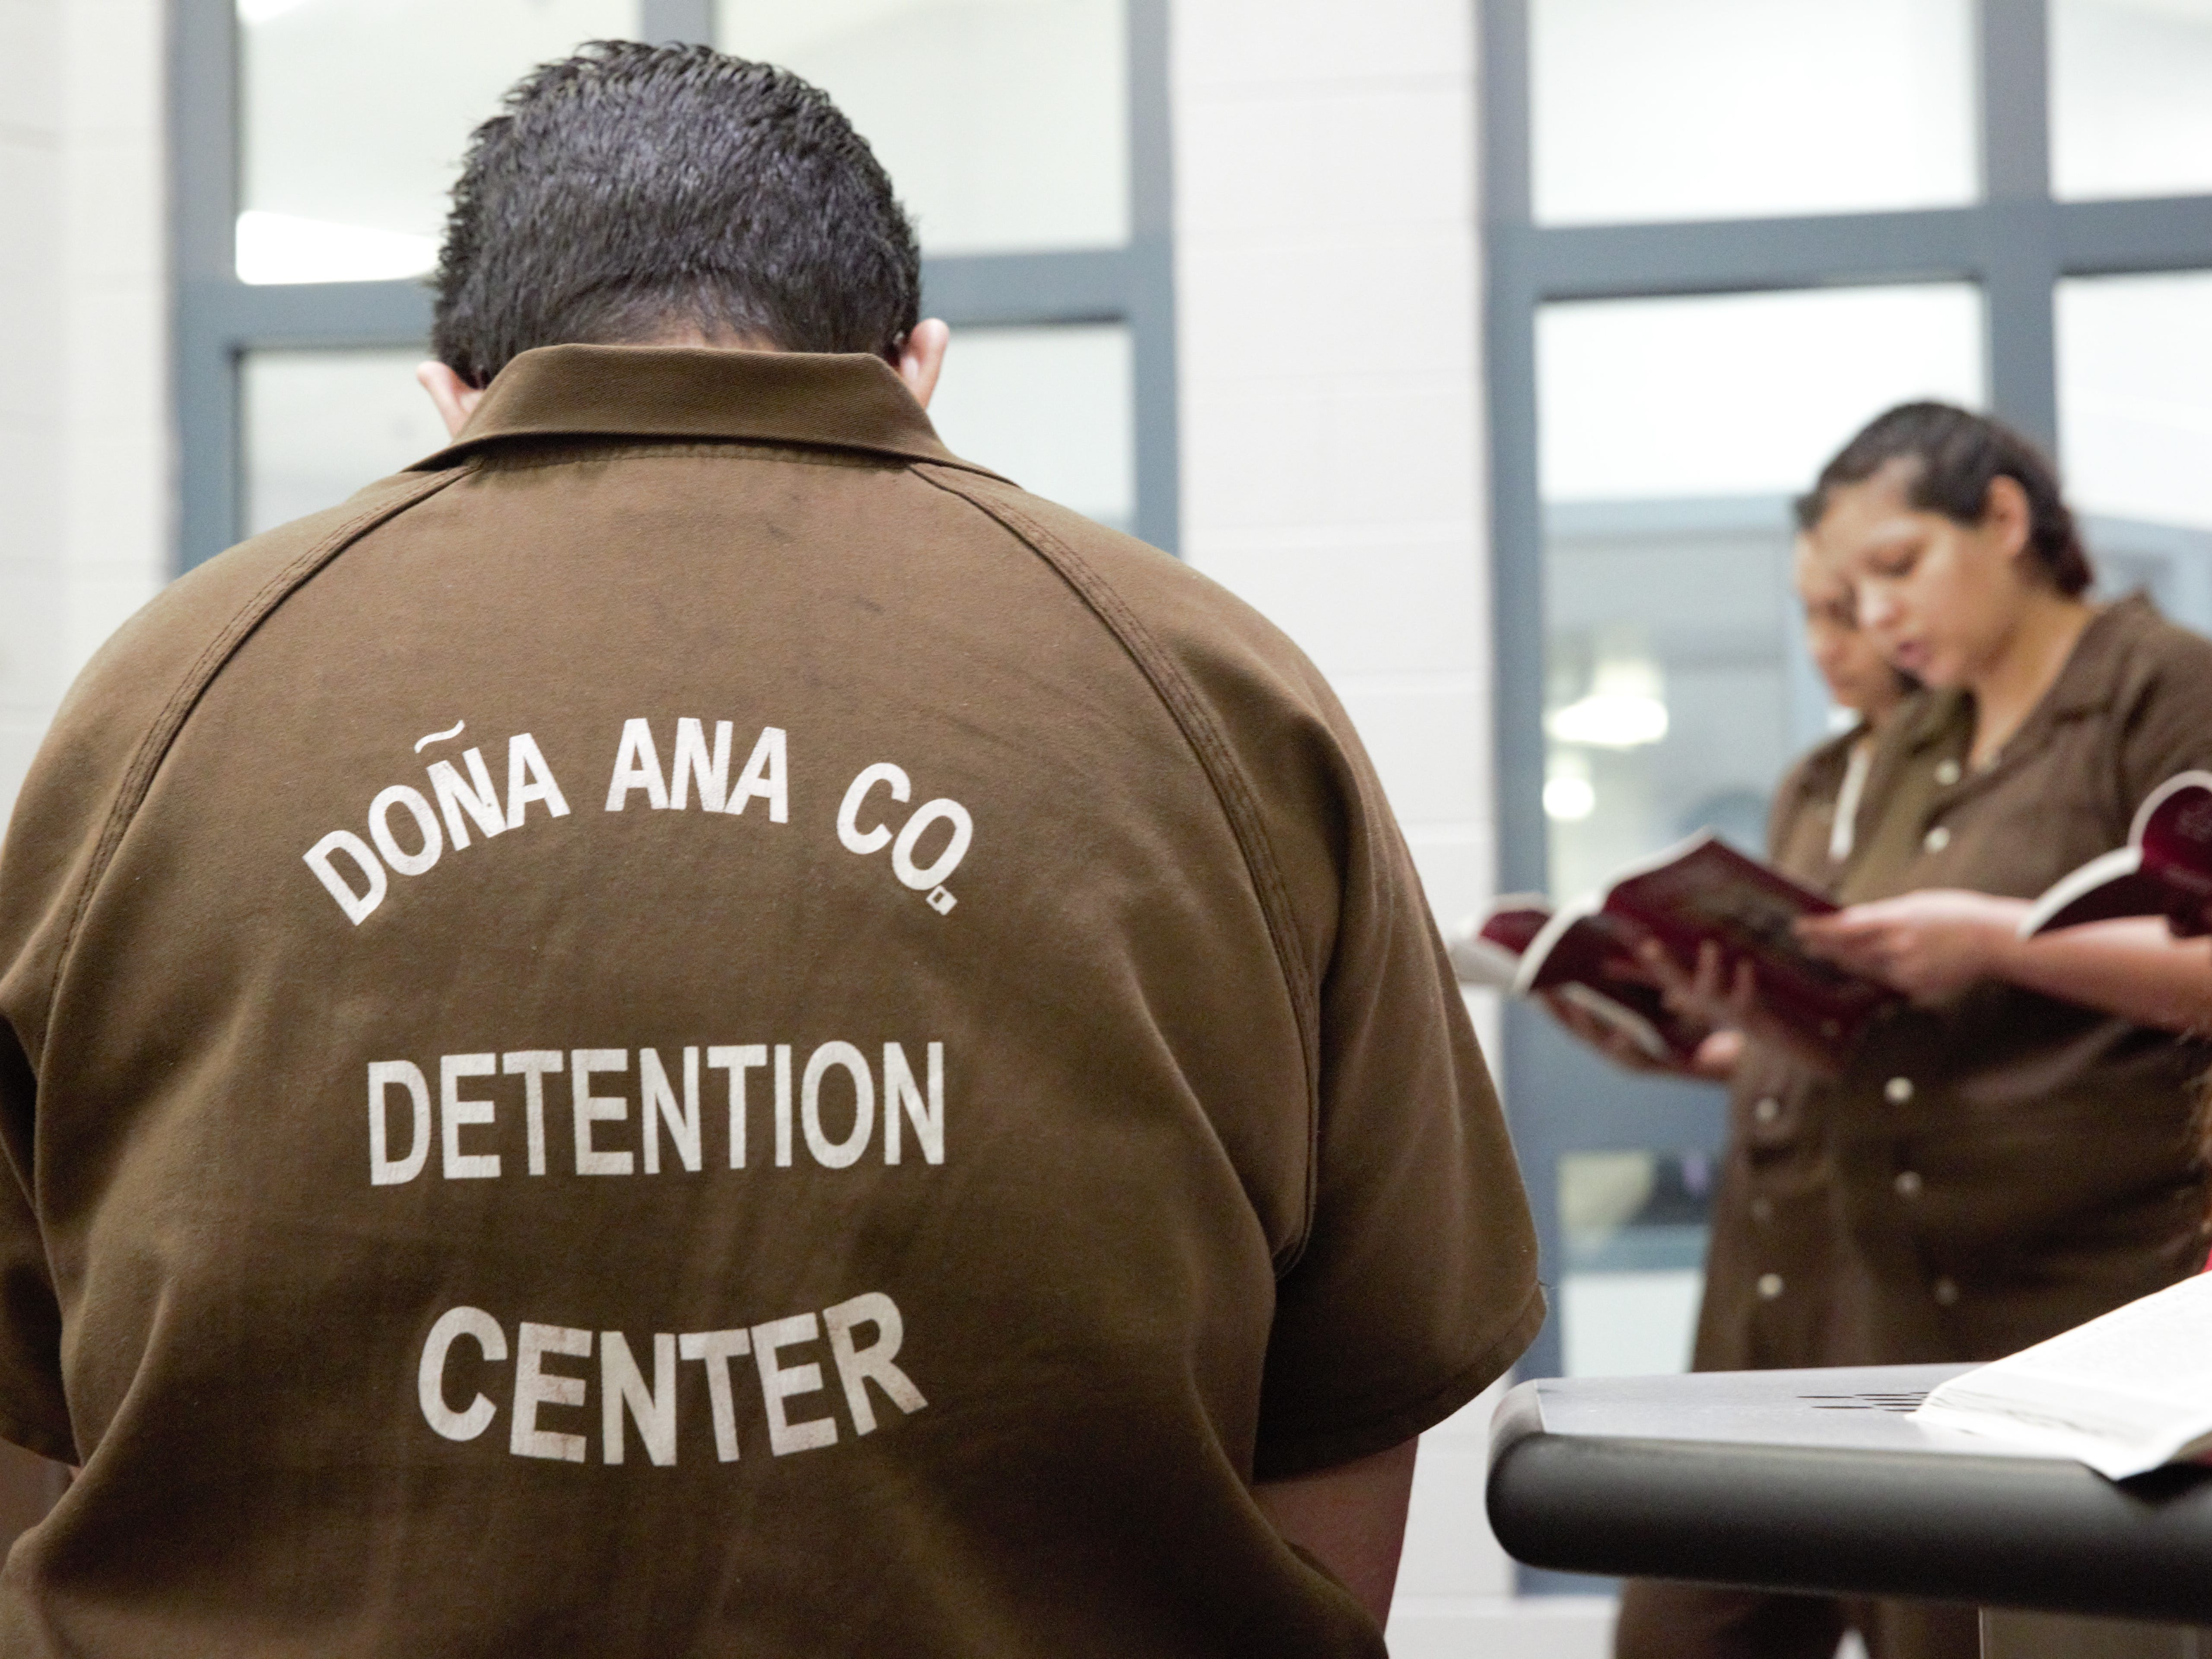 Inmates in a unit in the Doña Ana County Detention Center celebrate a Christmas Mass on Dec. 25, 2018.